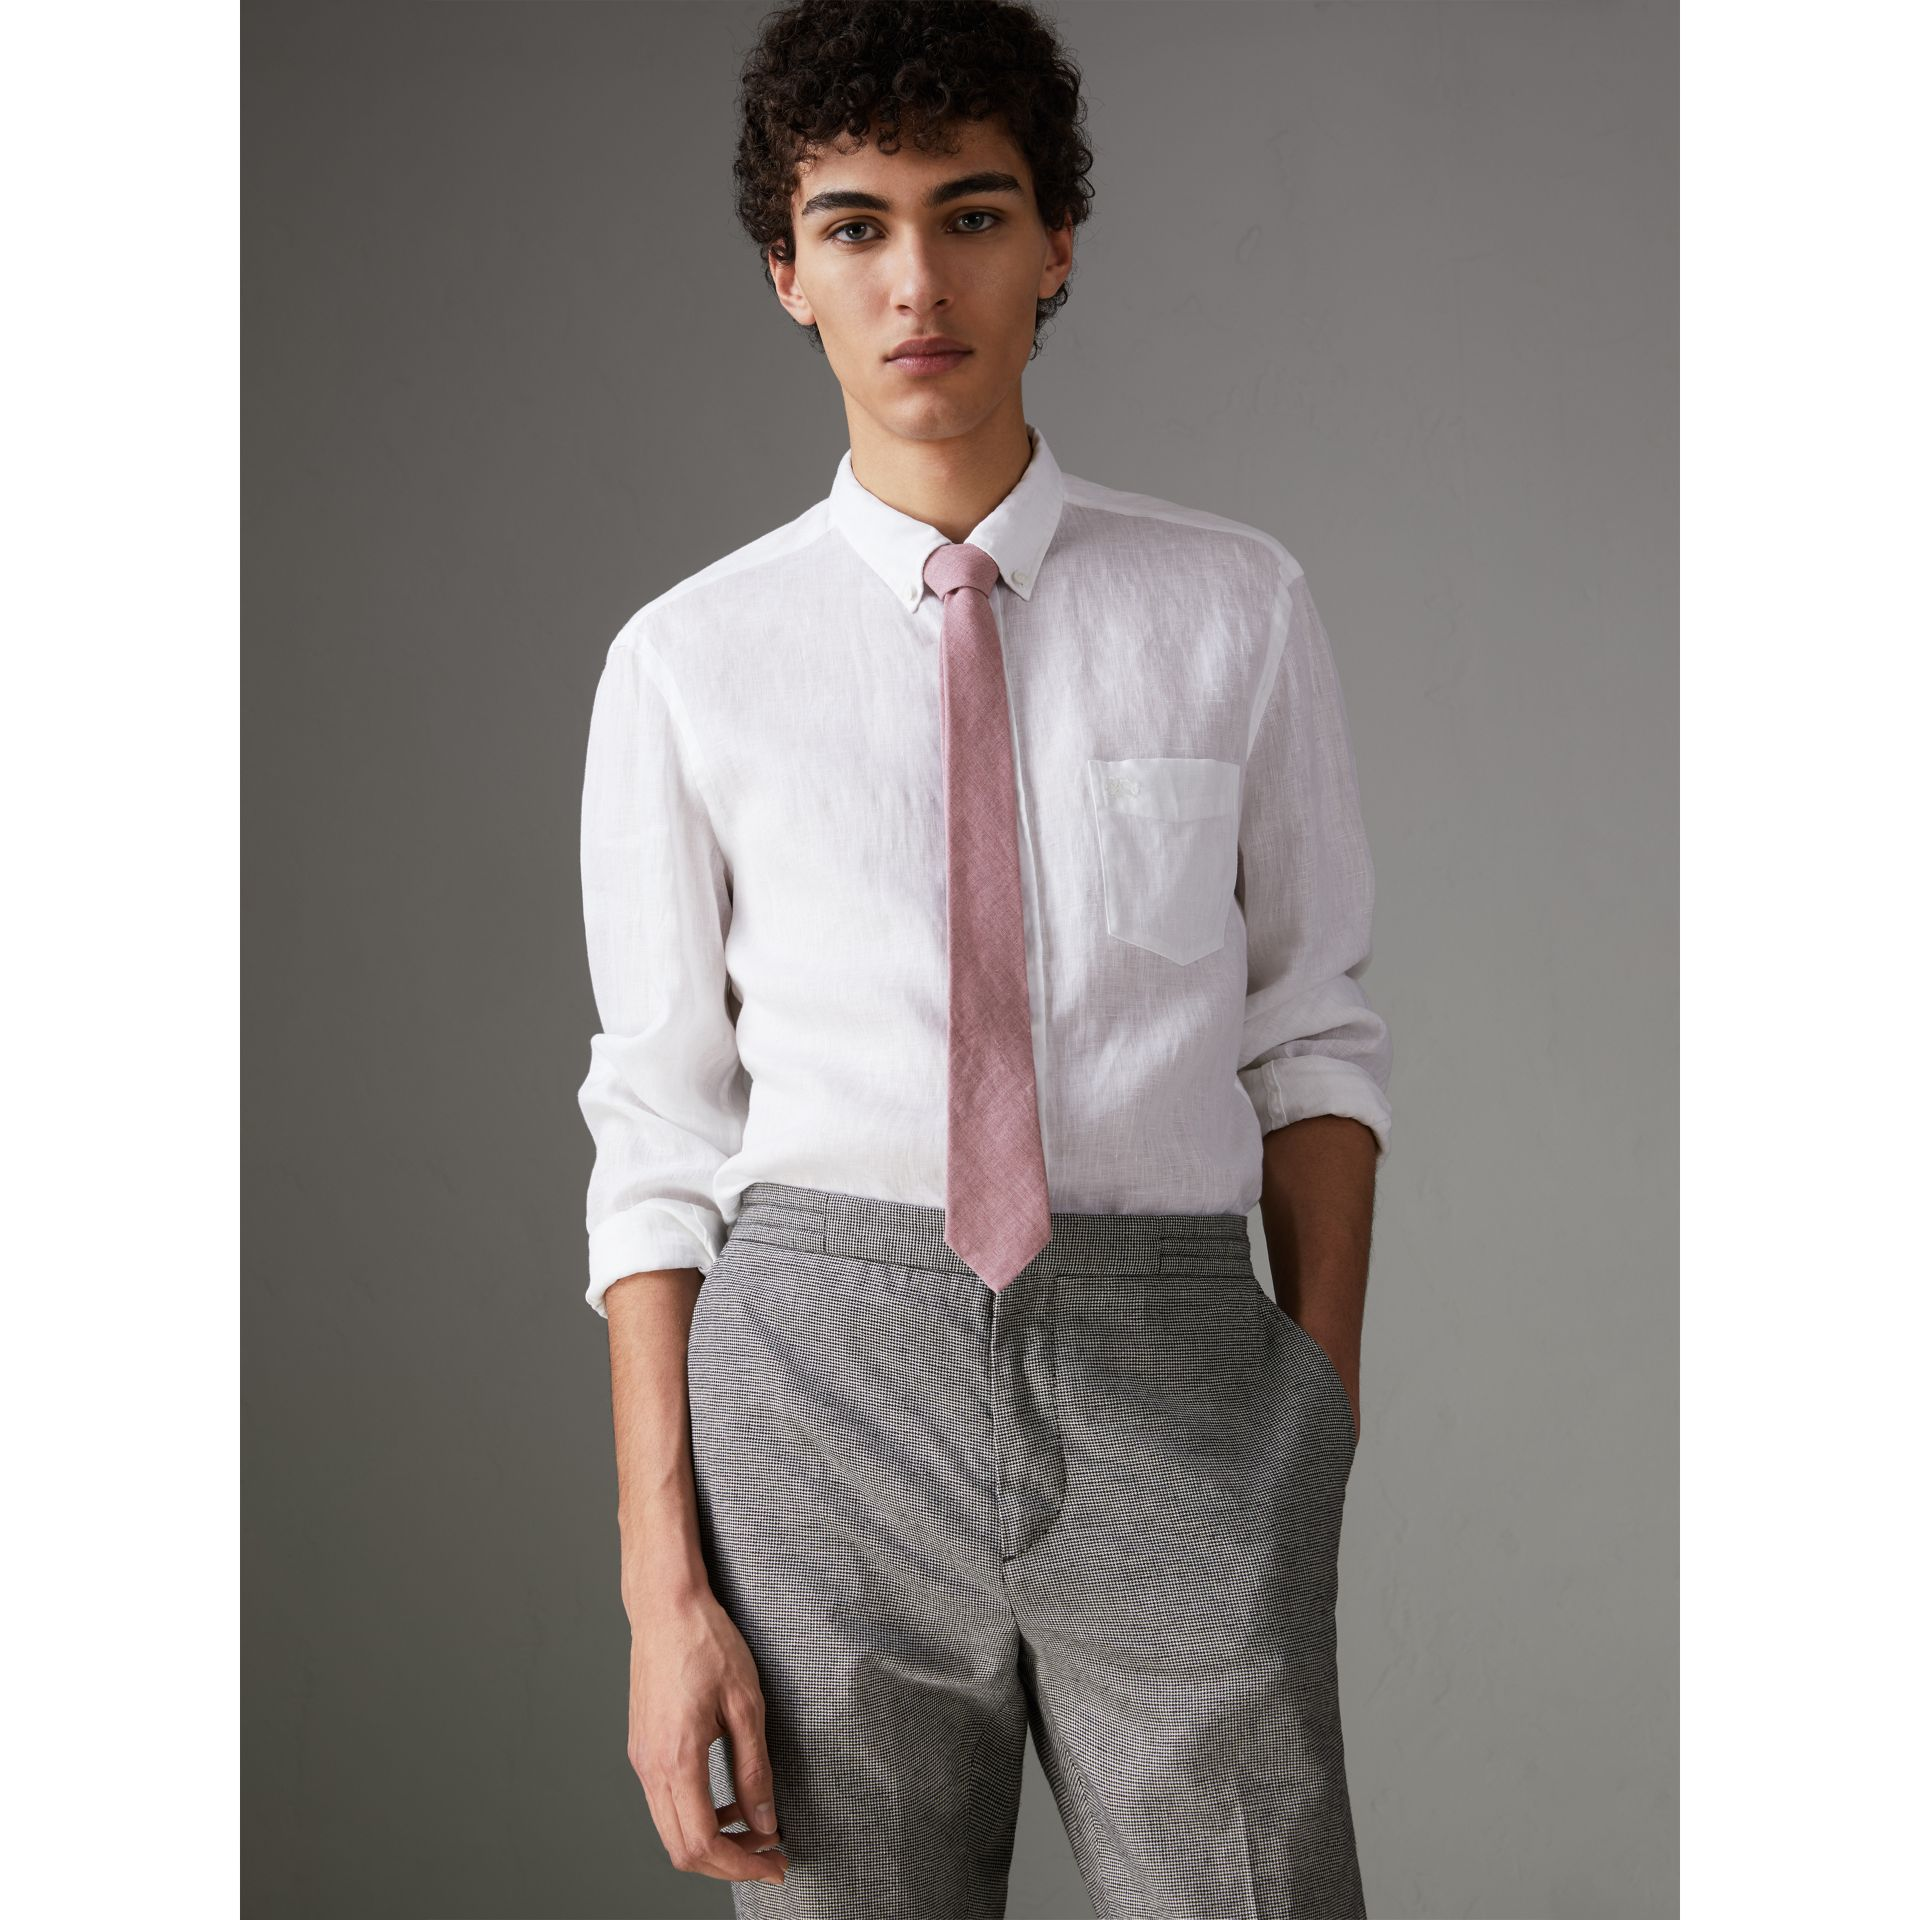 Slim Cut Linen Tie in Pink Heather - Men | Burberry - gallery image 3